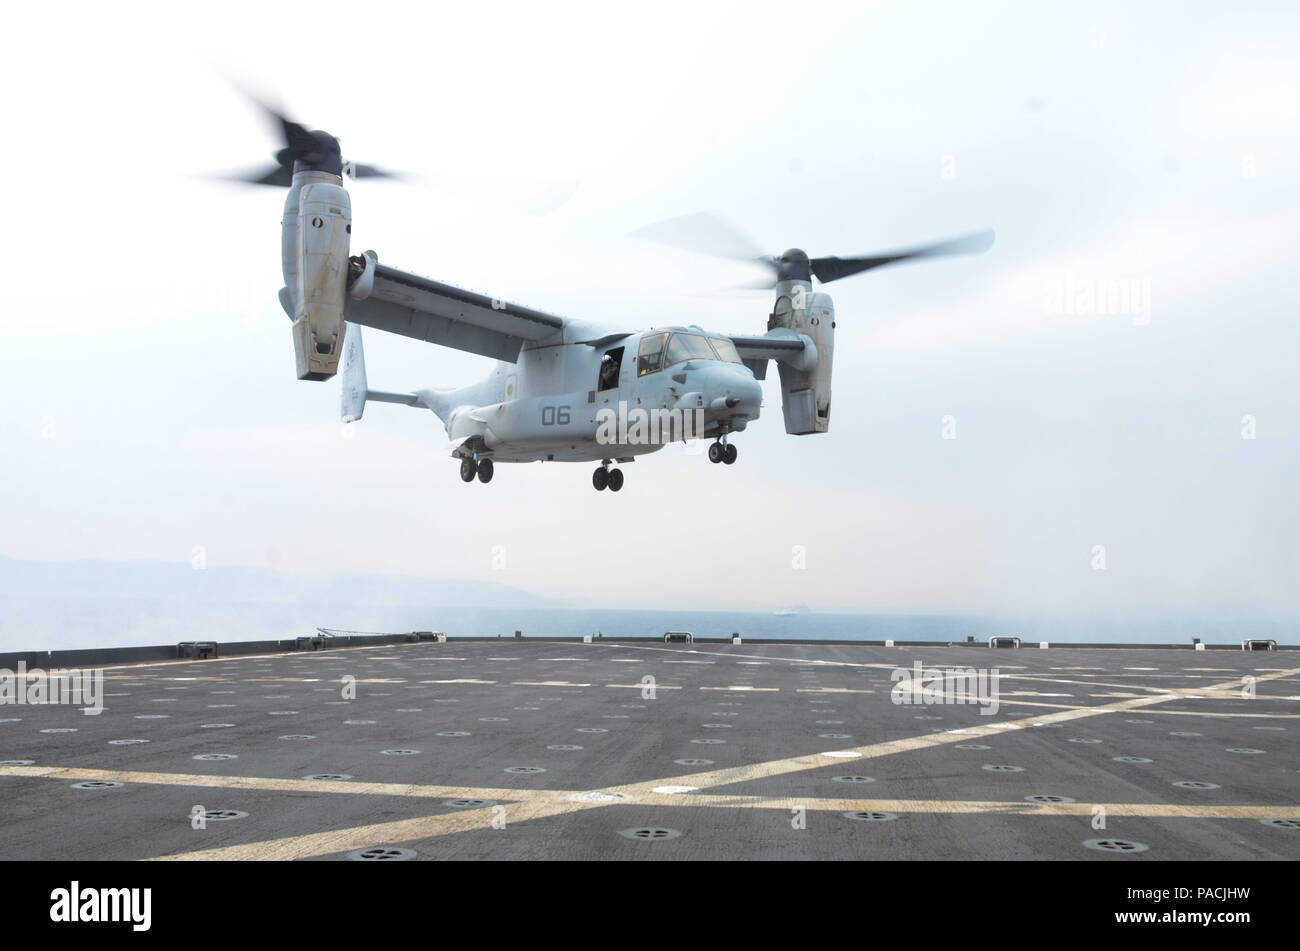 160314-N-WJ640-046 POHANG, South Korea (March 14, 2016) An MV-22 aircraft lands on-board dry cargo/ammunition ship USNS Sacagawea (T-AKE 2) during flight operations, March 14. The Sacagewea was one of three MPF ships that offloaded her cargo in support of Exercise Ssang Yong 16, under the Exercise Freedom Banner 2016 directive. (U.S. Navy photo by Mass Communication Specialist 3rd Class Madailein Abbott/Released) Stock Photo